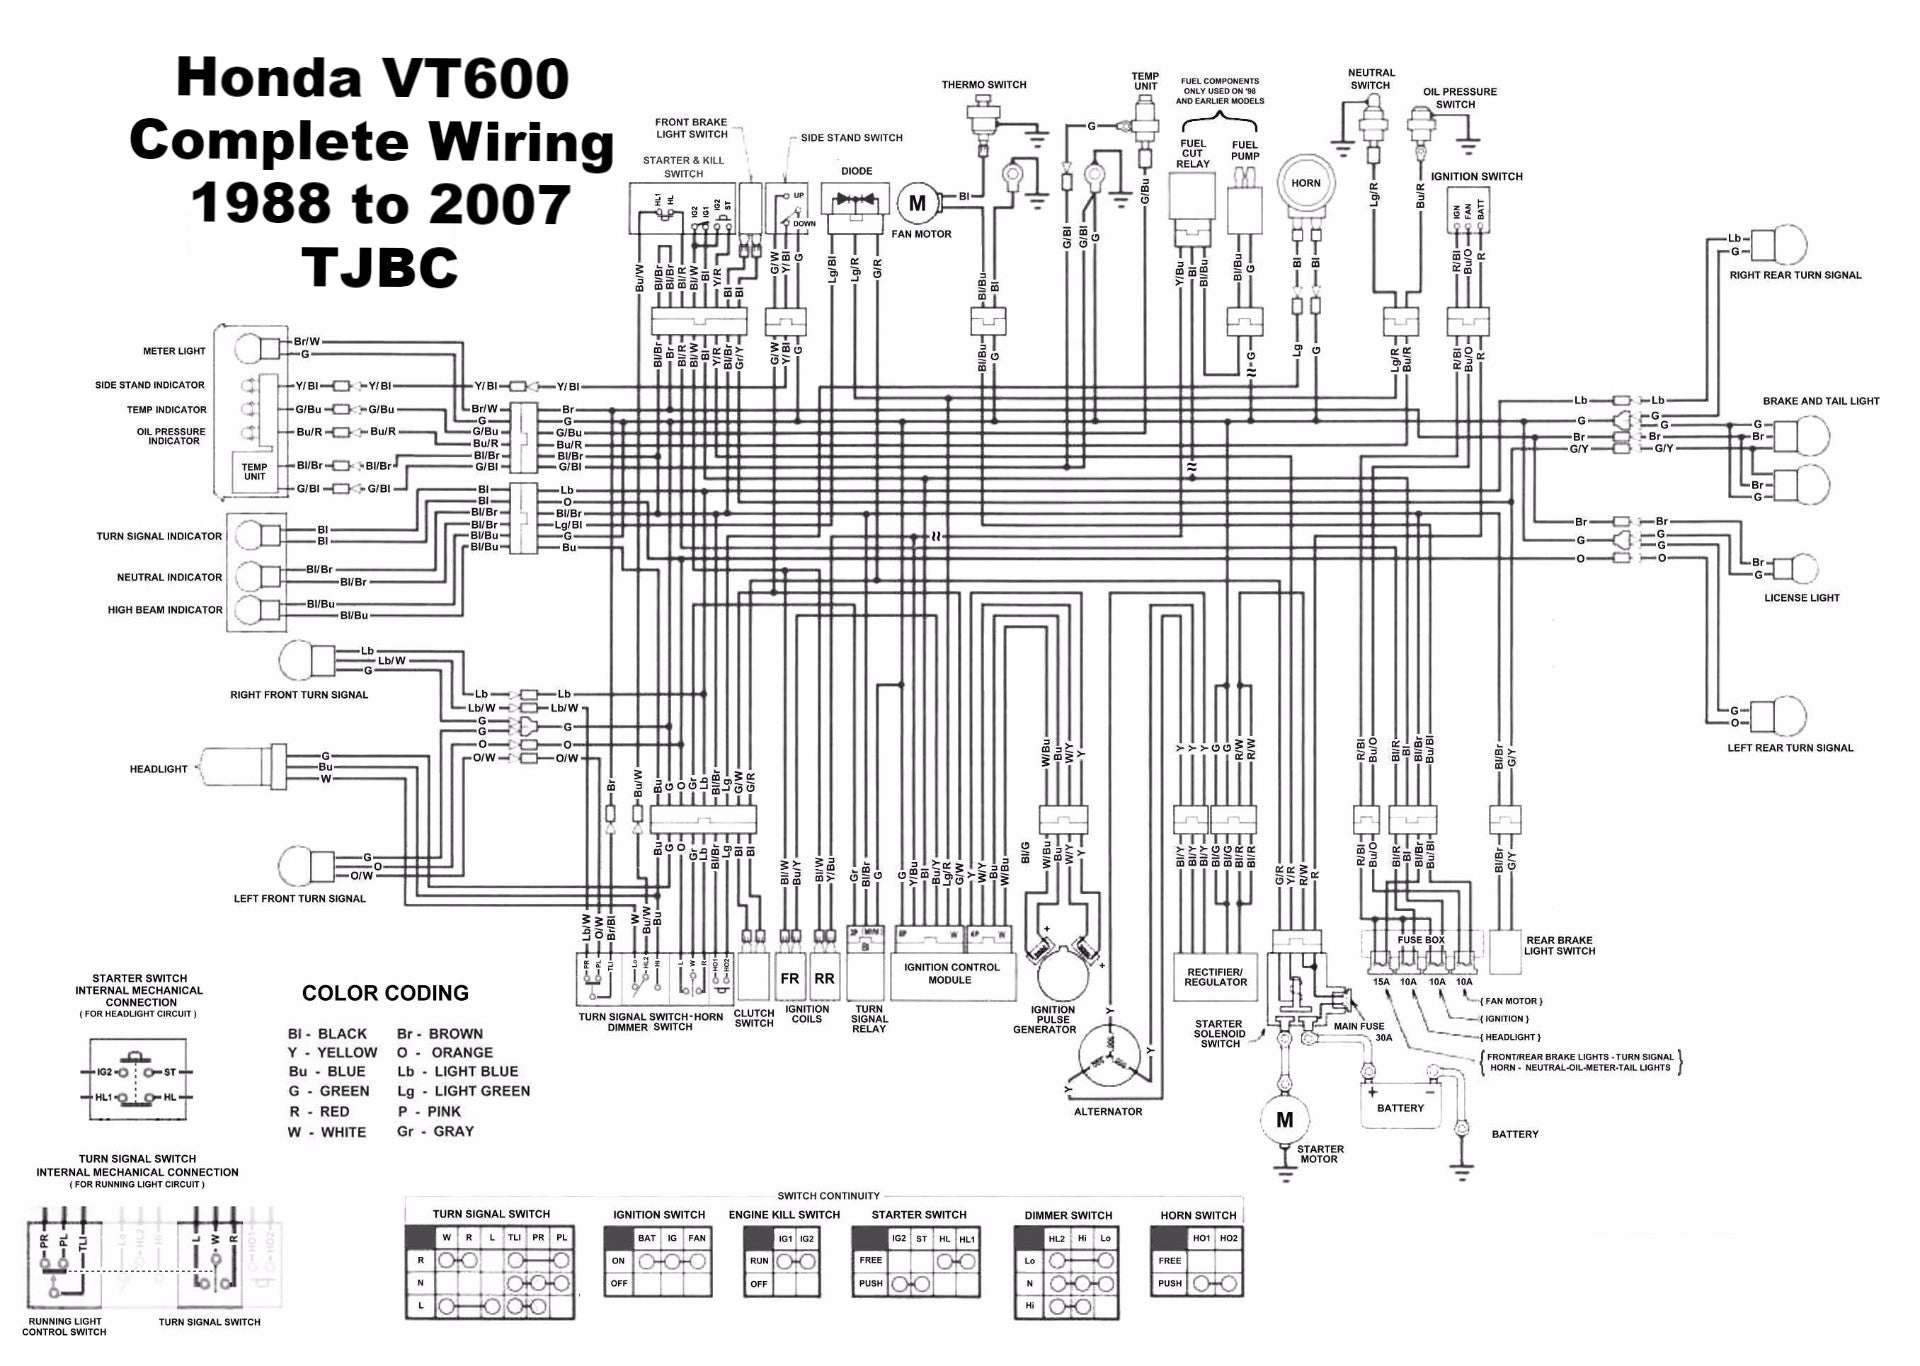 Honda 600 Car Wiring Specs Vl800 Schematic Sun Ridge Management Group Manual